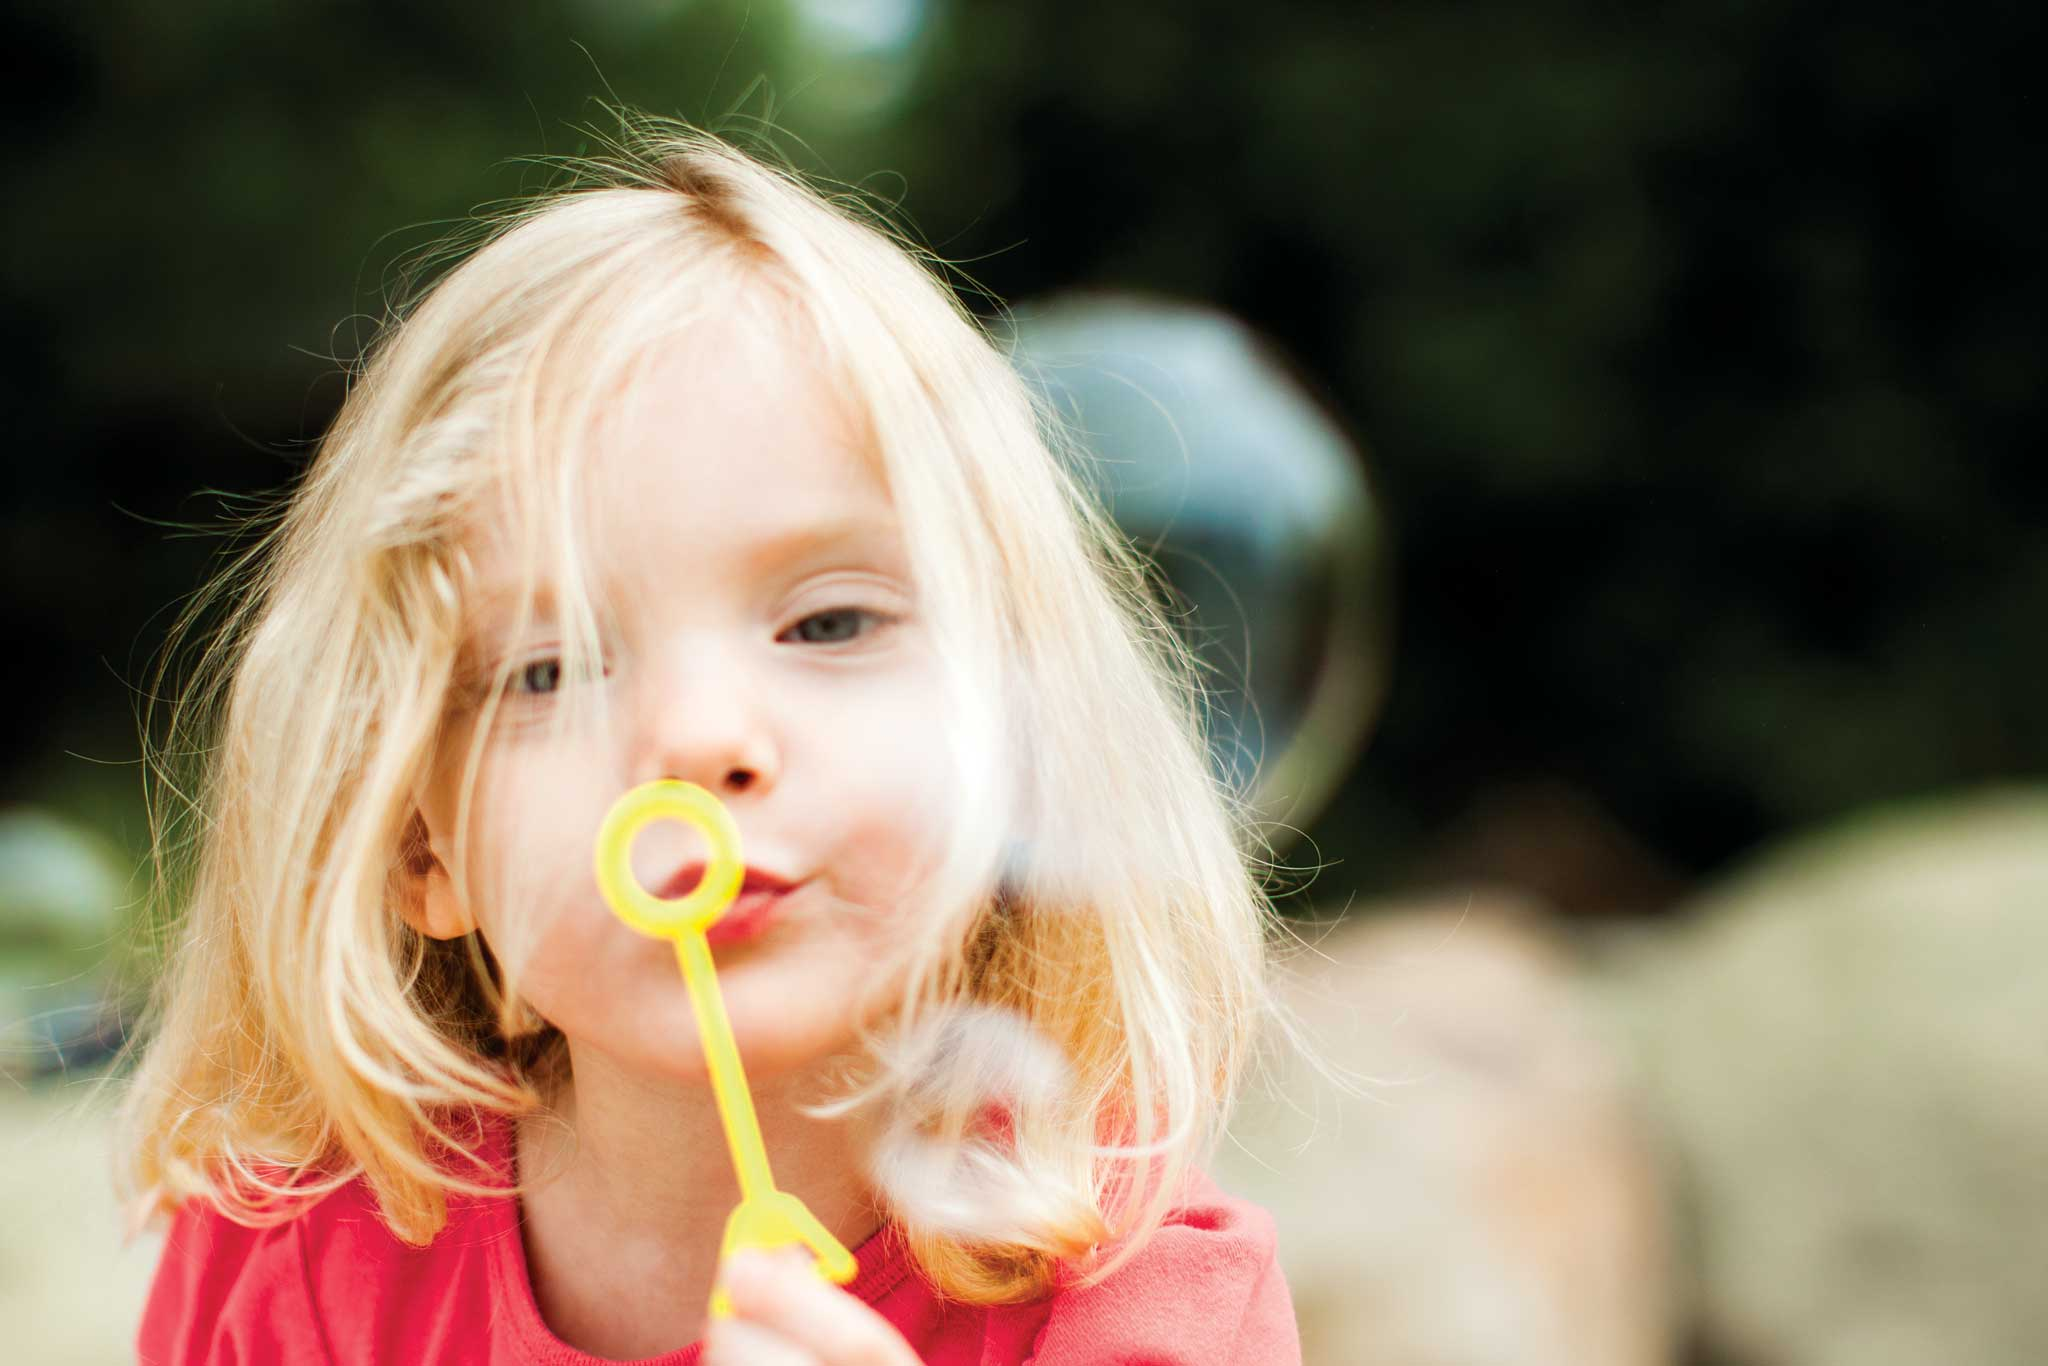 Young blond girl blowing bubbles